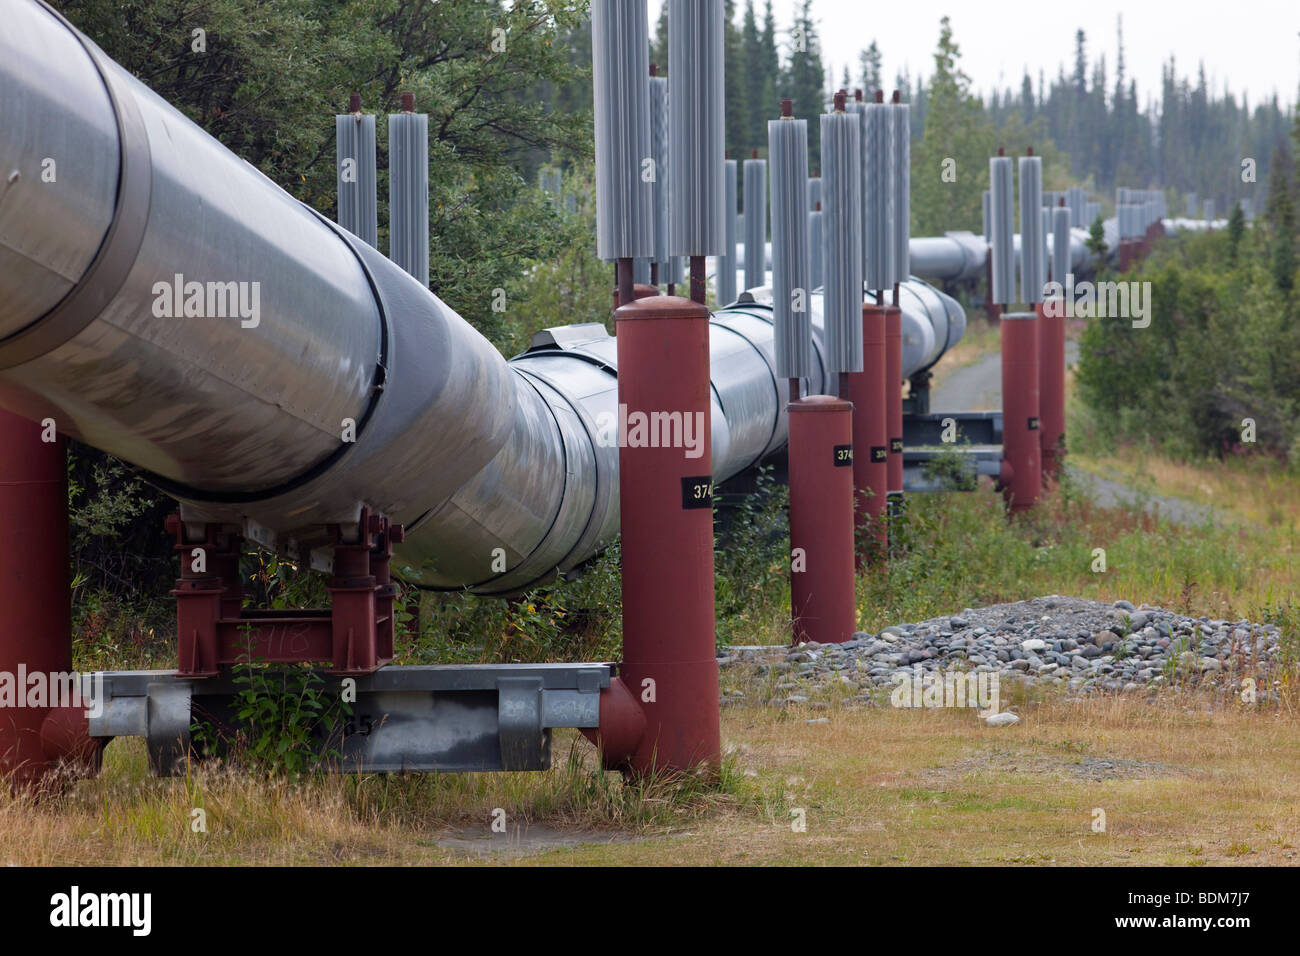 Copper Center, Alaska - The Trans-Alaska Pipeline, which carries oil 800 miles from Prudhoe Bay to Valdez. - Stock Image